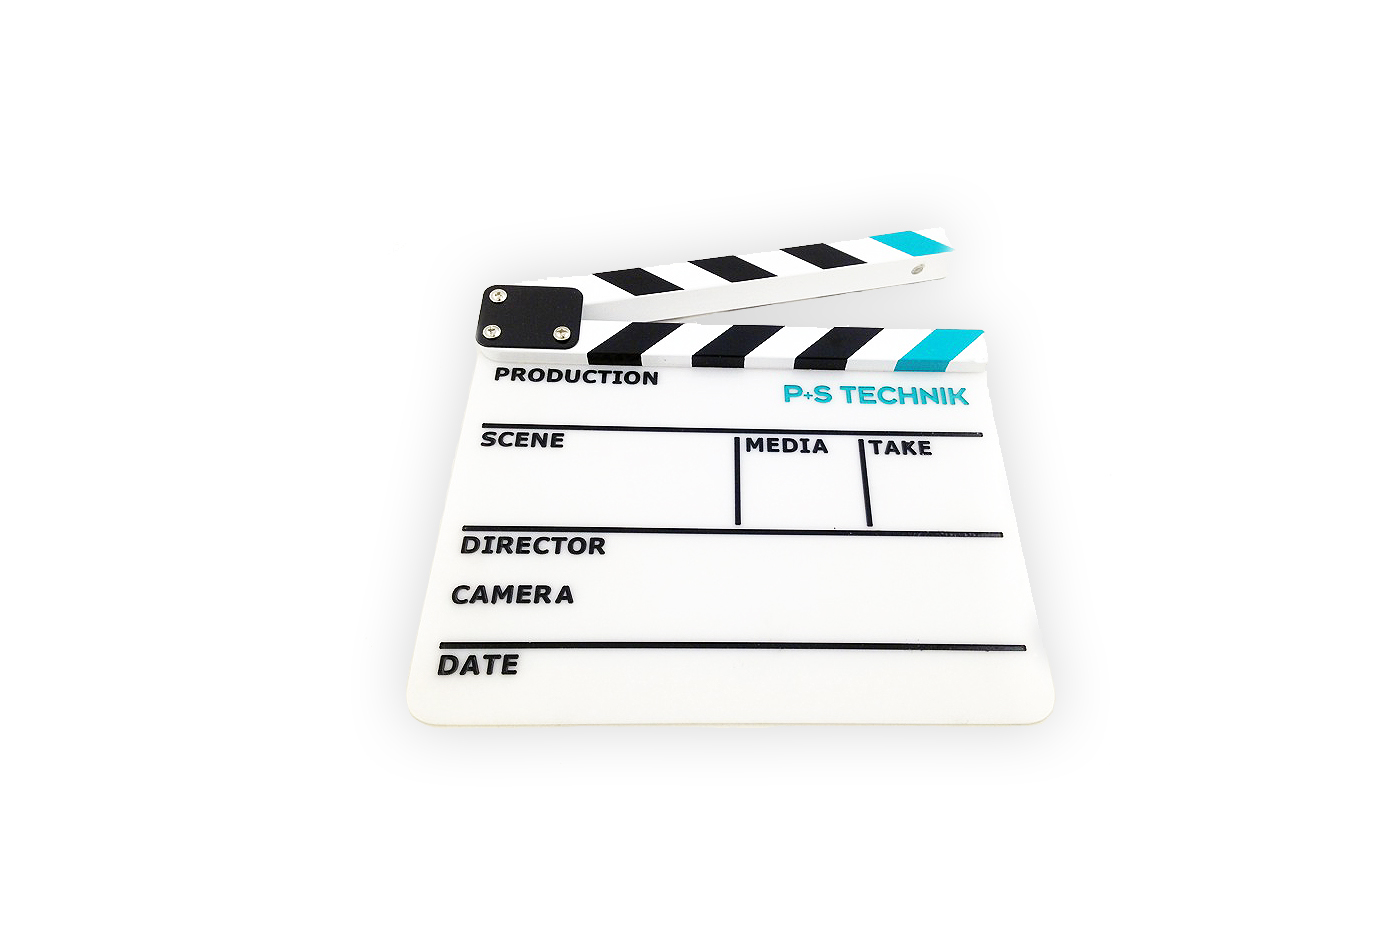 P+S TECHNIK CLAPPERBOARD 1671